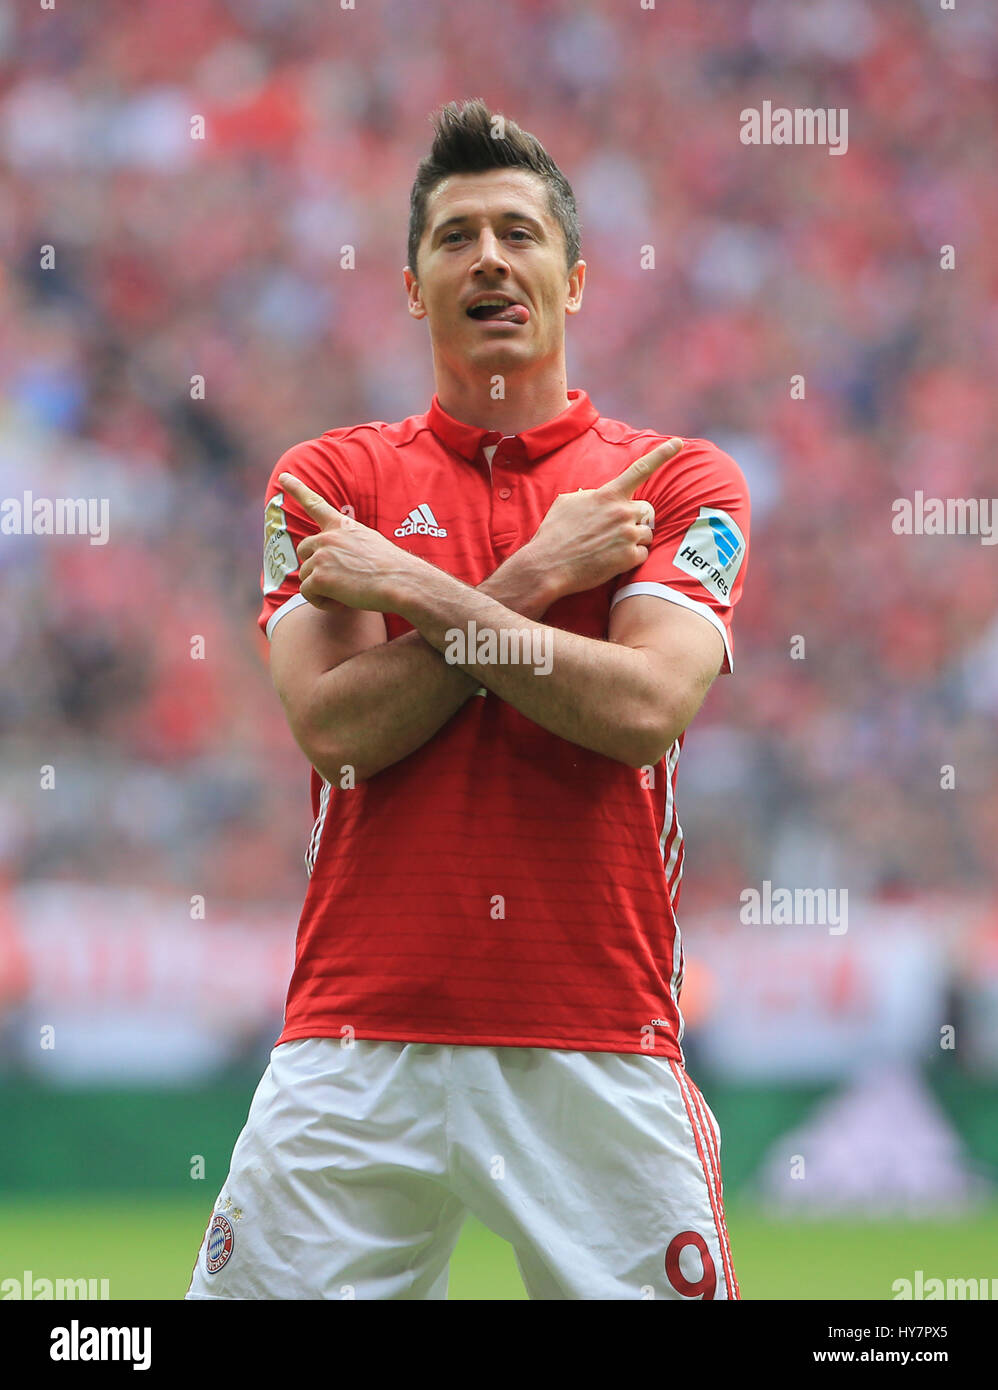 Munich Germany 1st Apr 2017 Bayern Munich s Robert Lewandowski